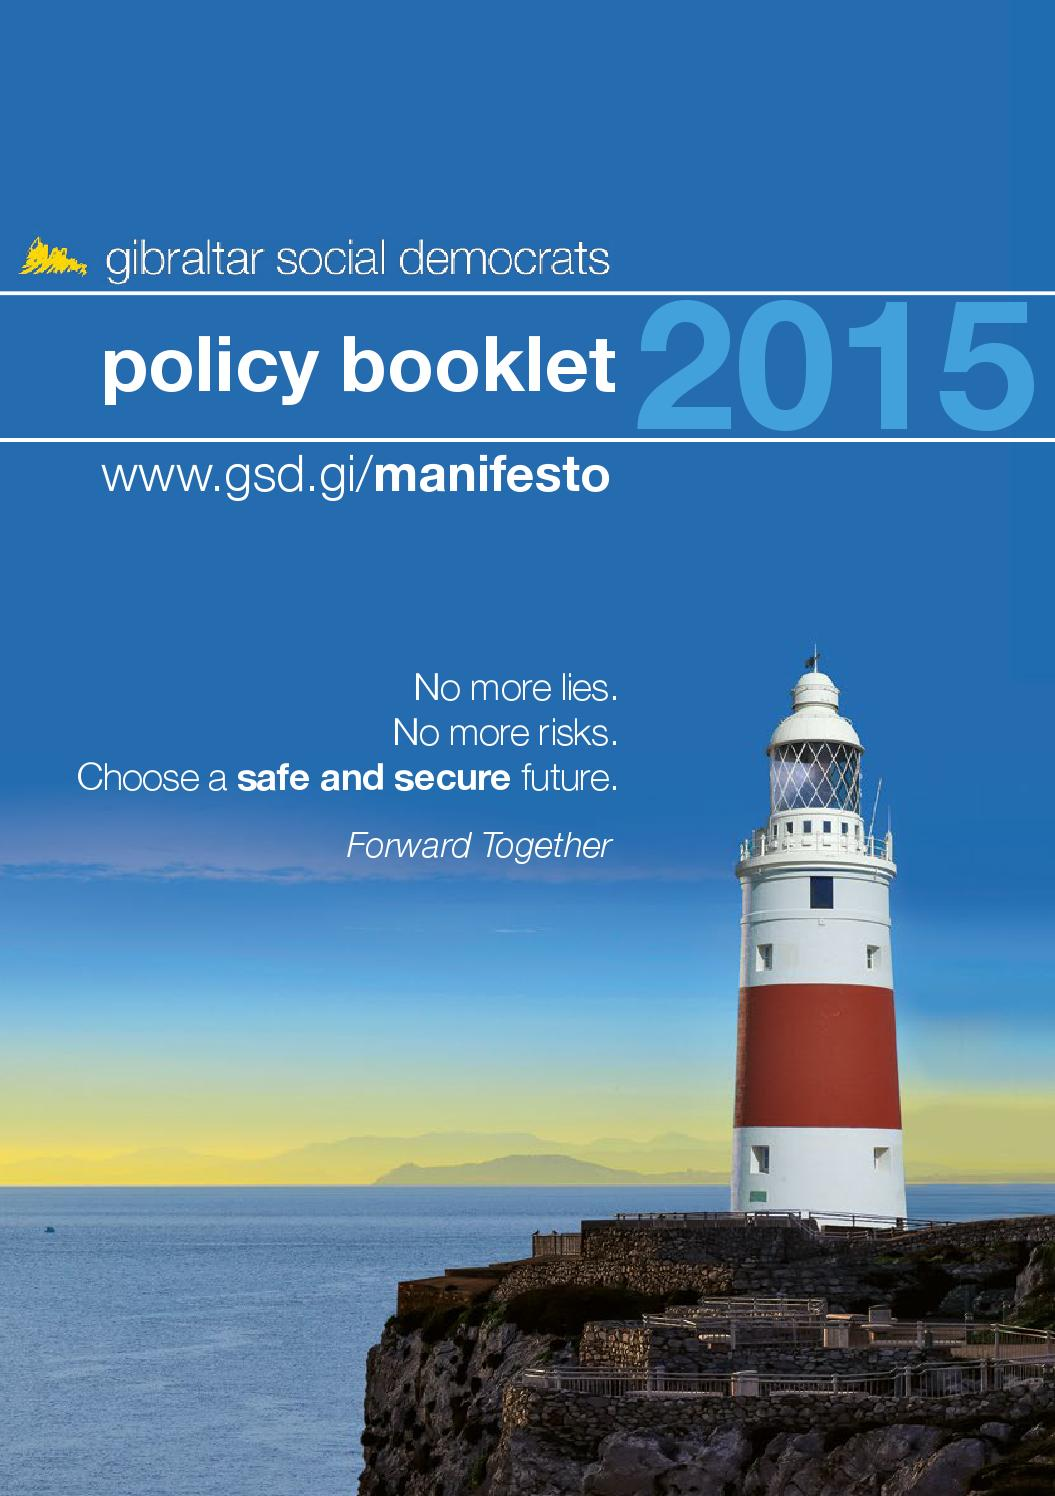 GSD Policy Booklet 2015 by GSD